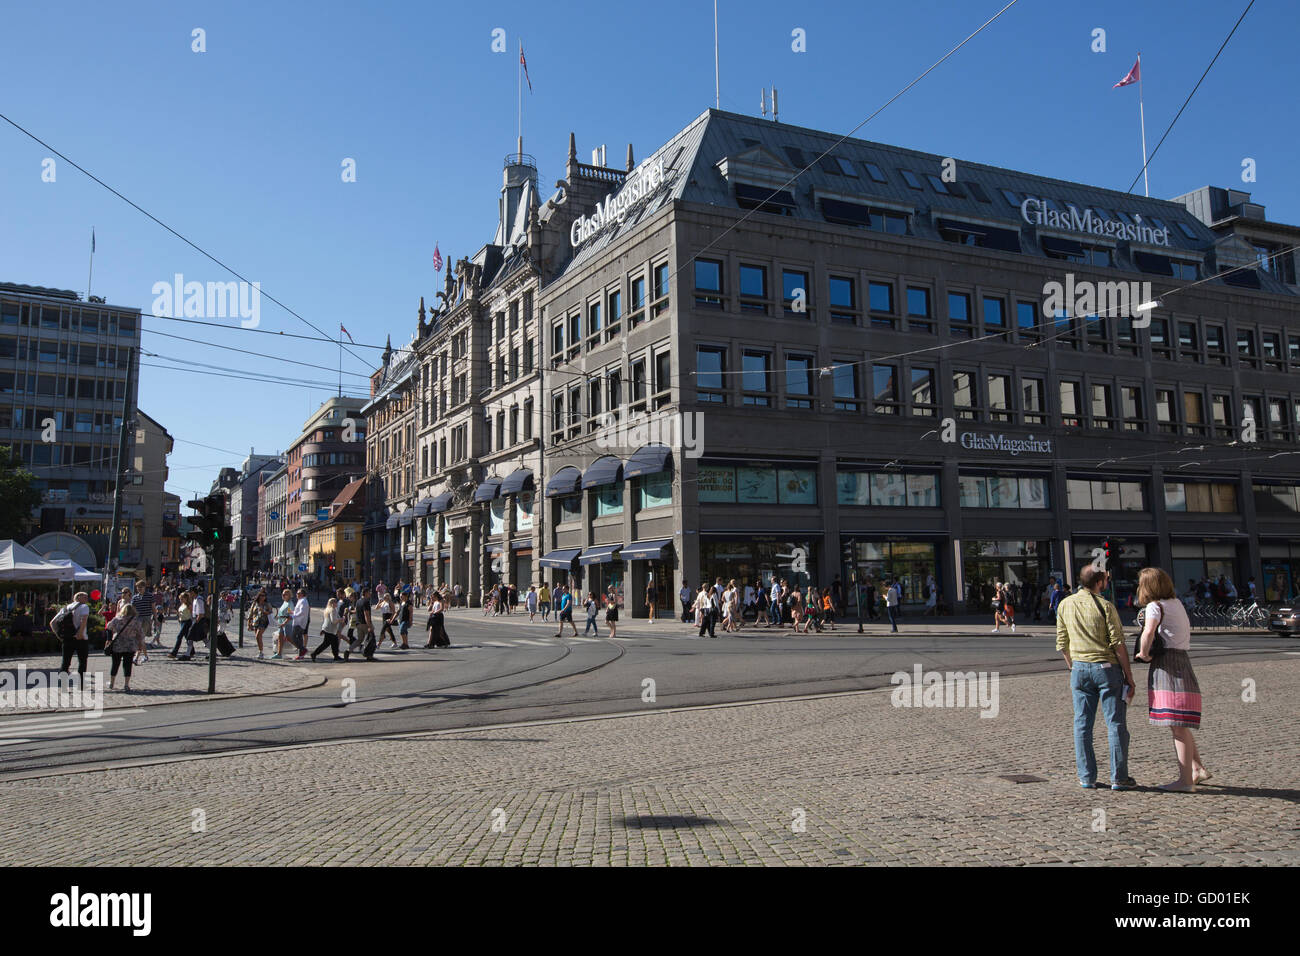 Stortorvet, central Oslo, where the department store GlasMagasinet is located, Oslo, Norway - Stock Image